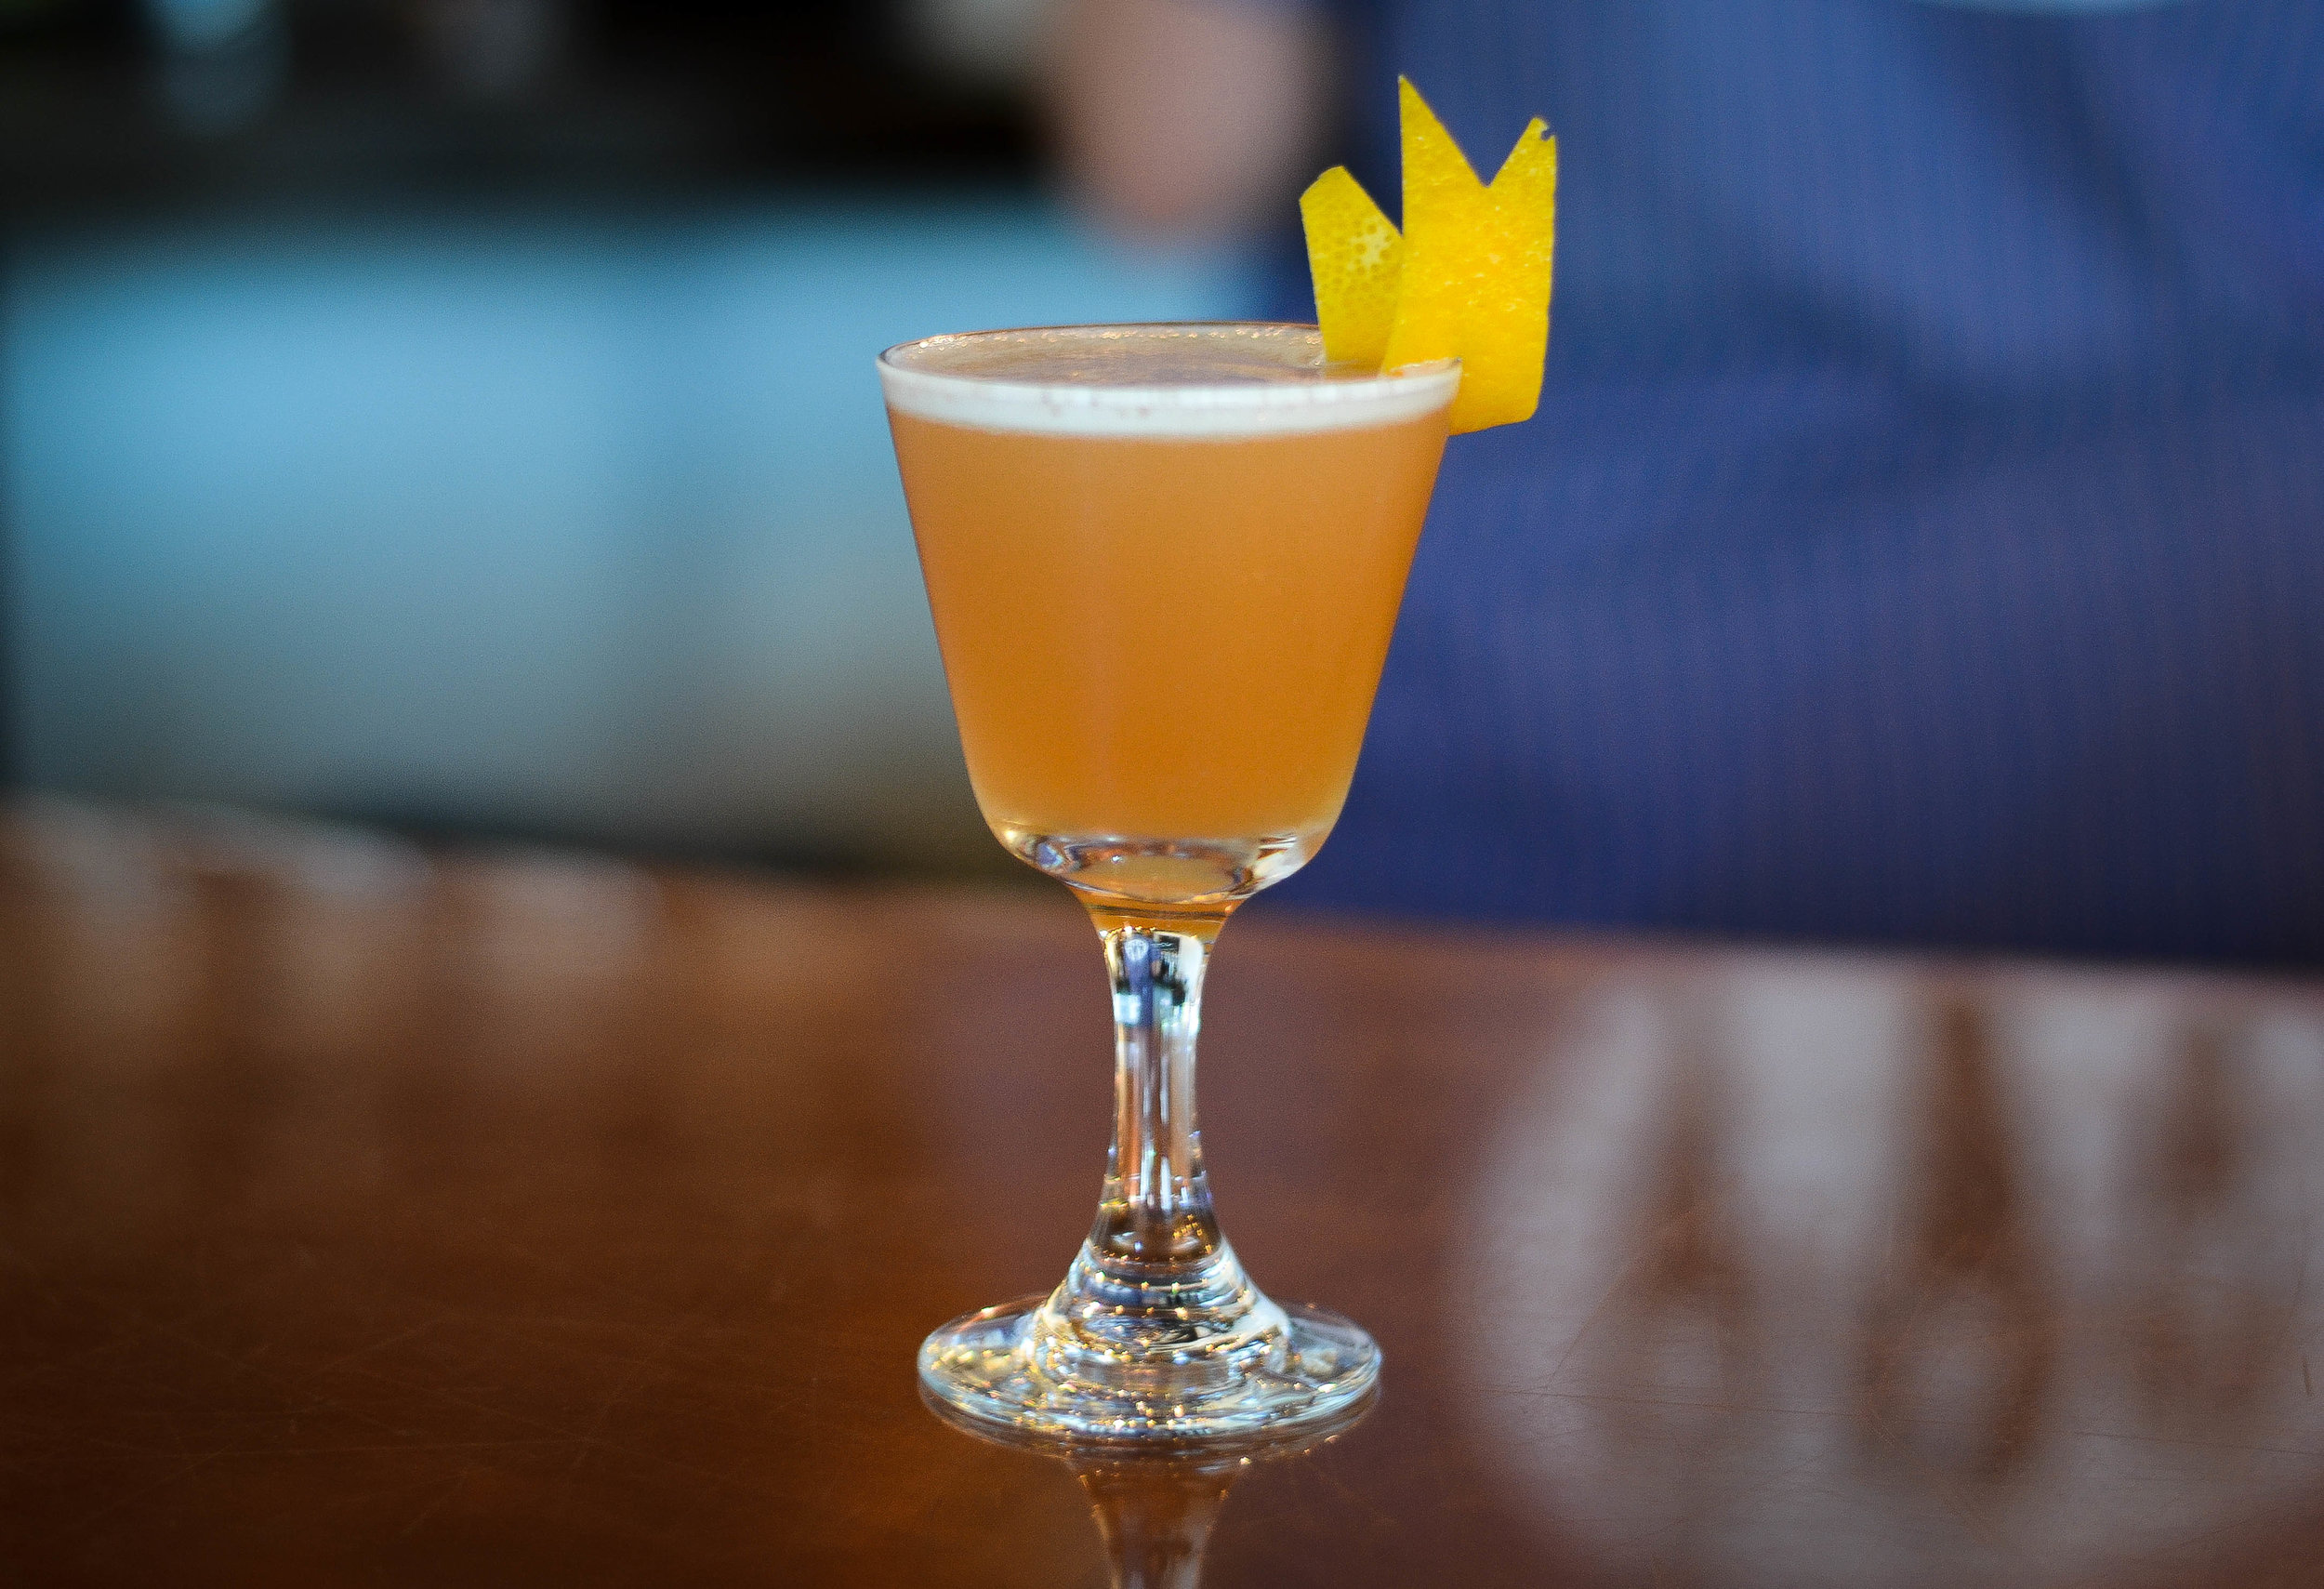 Corsair distillery serves delicious cocktails in its tasting room